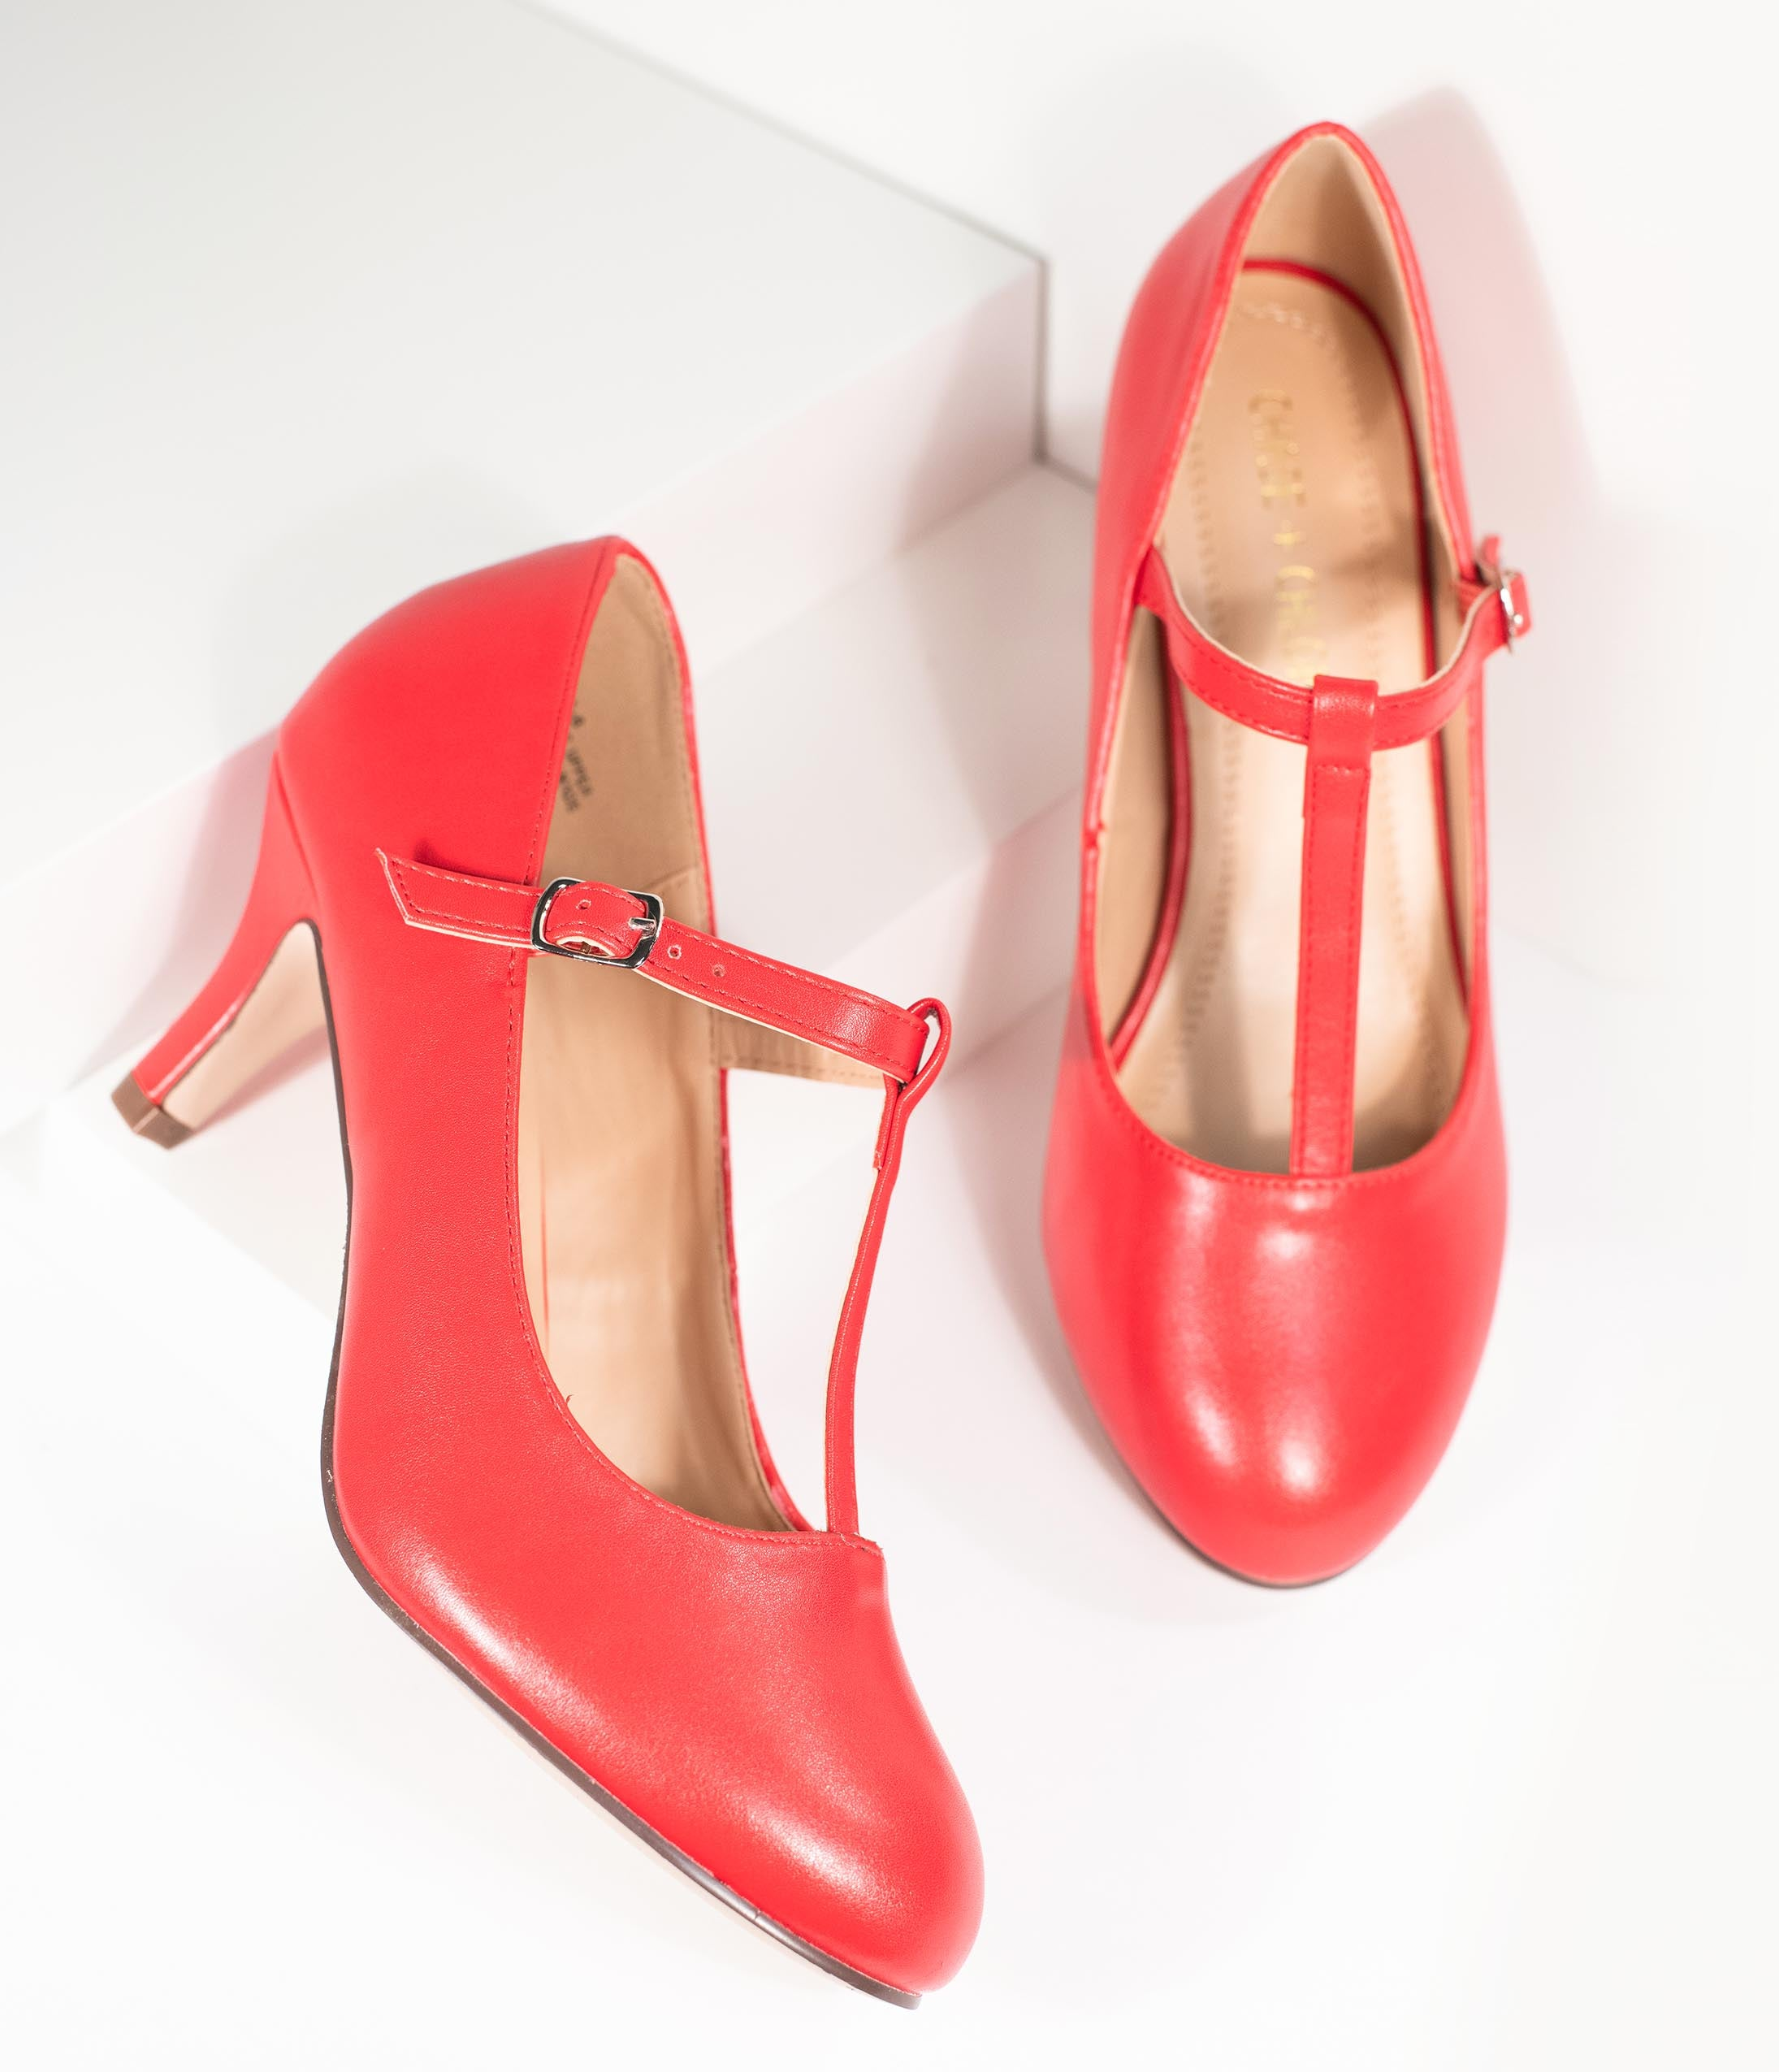 1950s Style Shoes | Heels, Flats, Saddle Shoes Vintage Style Red Leatherette T-Strap Heels $42.00 AT vintagedancer.com